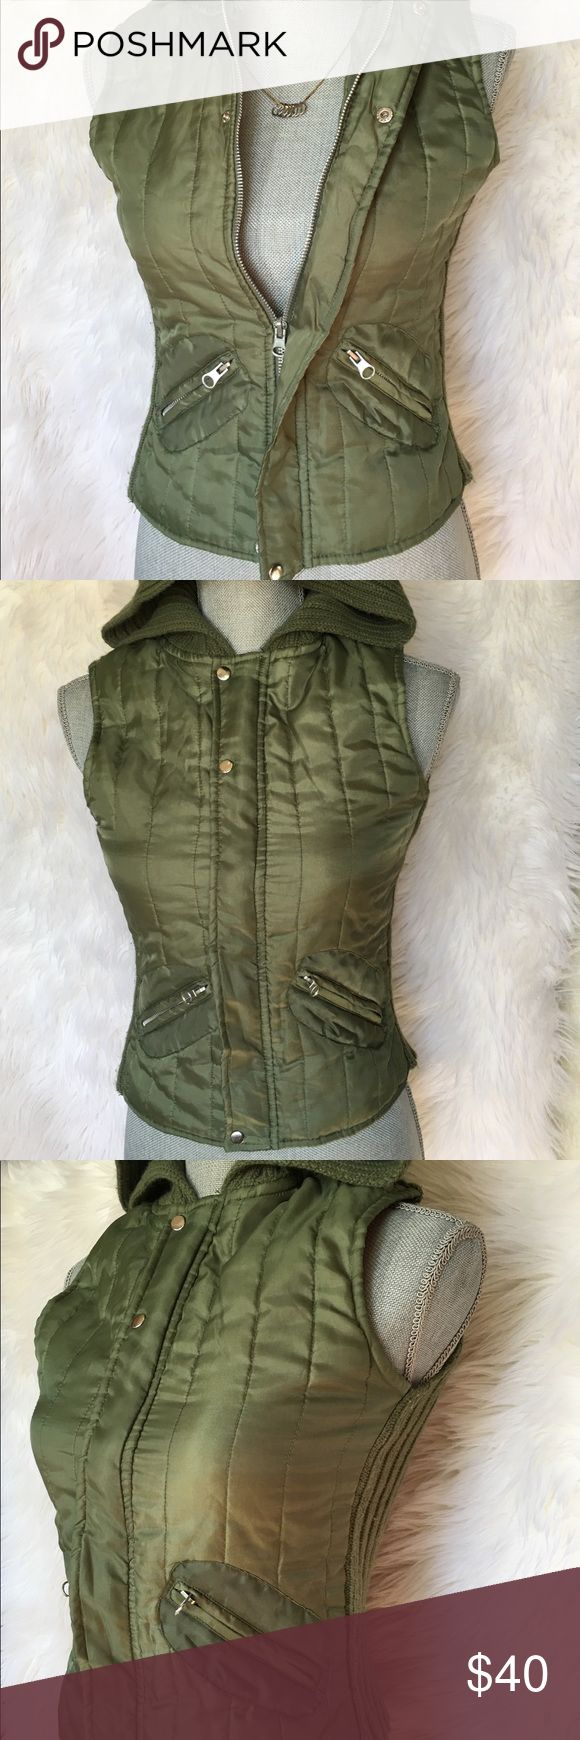 Derek Heart green zip up vest with Pockets Women's Green Zip up vest with silver metallic buttons and front pockets, stretchy material and has a hoodie  size Small Derek Heart Jackets & Coats Vests